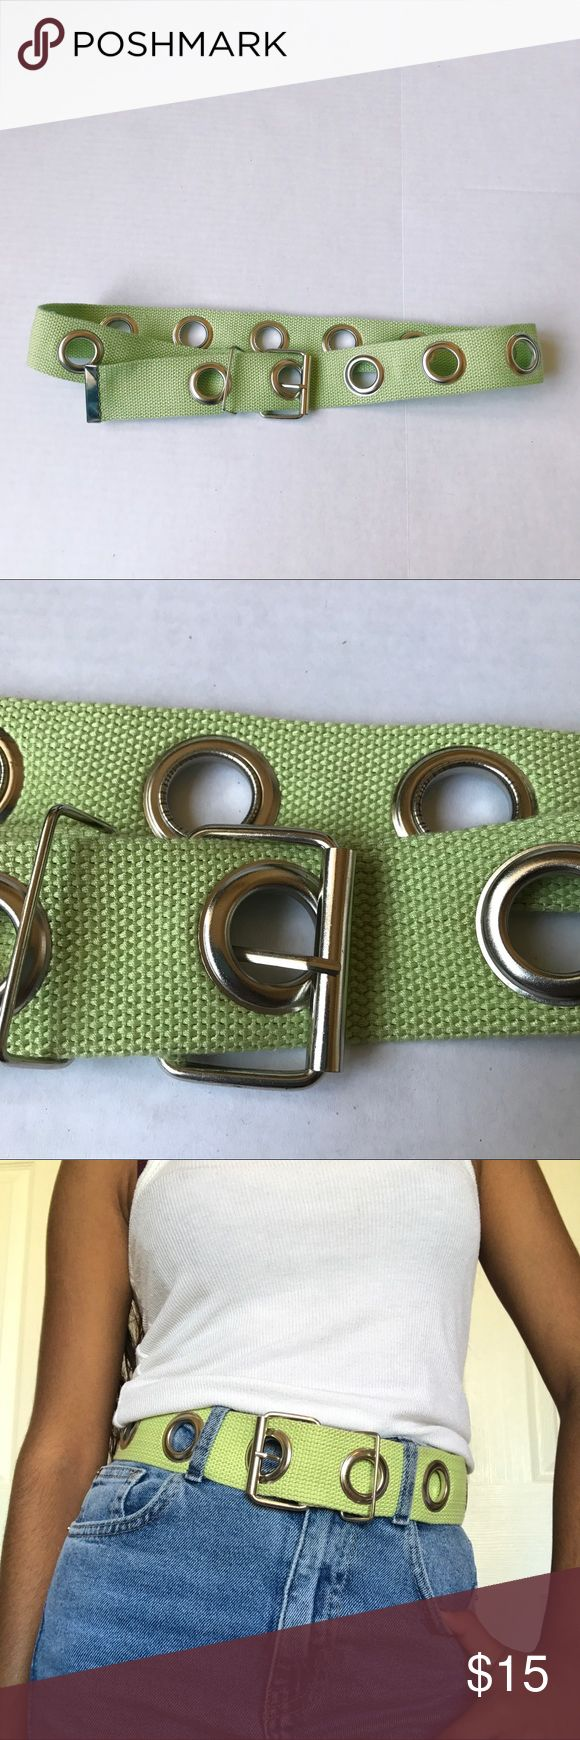 GREEN BELT cute green belt that will fit any size. in perfect condition. not unif, just for exposure UNIF Accessories Belts